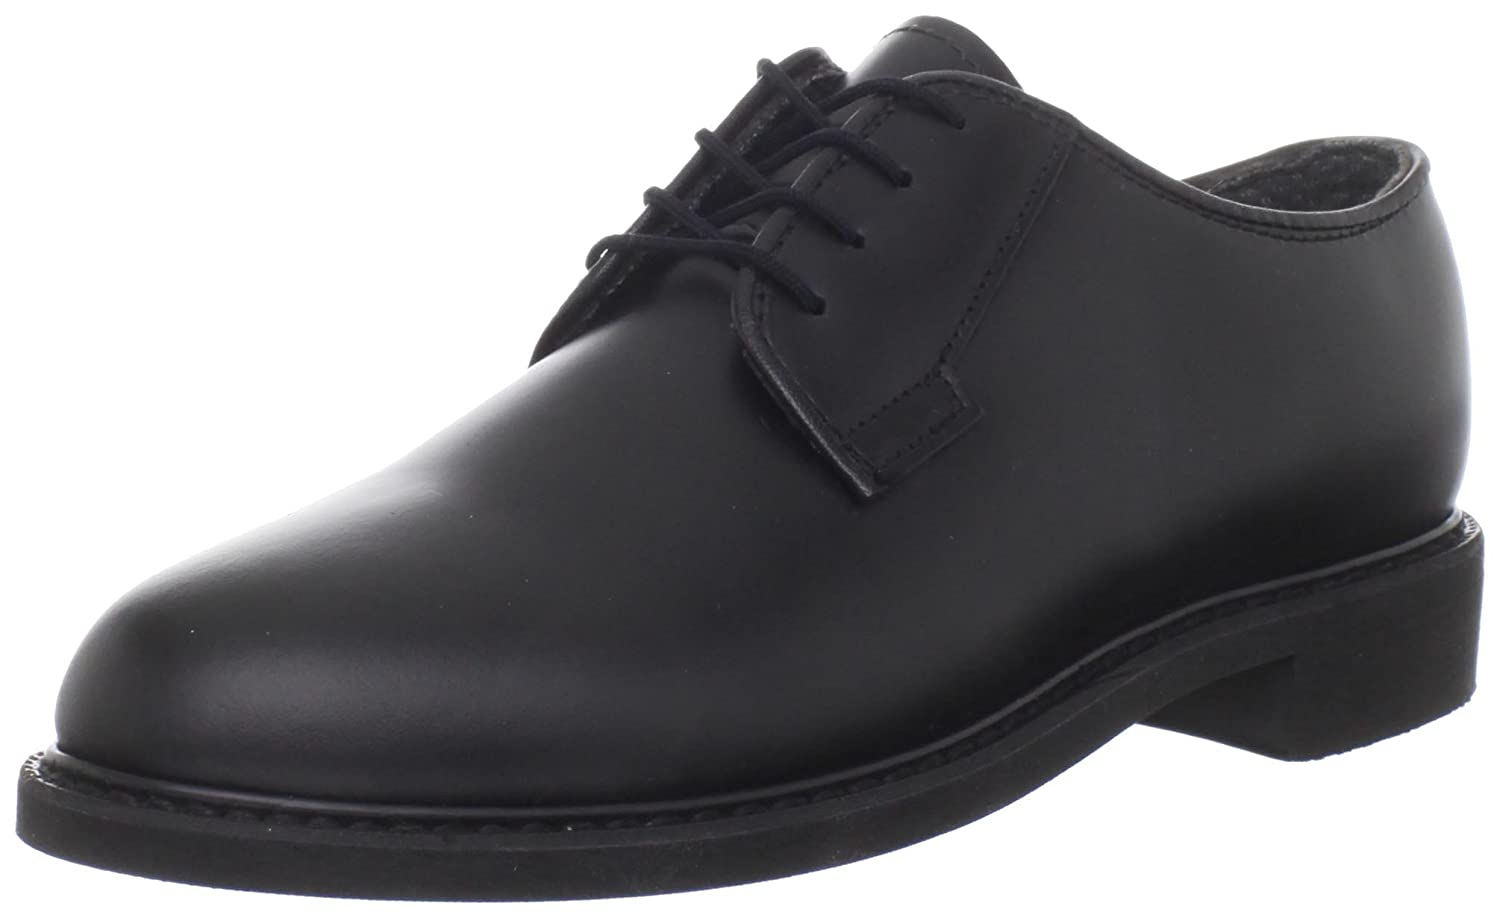 36945cfb05 Amazon.com | Bates Women's Leather Uniform Shoe | Walking